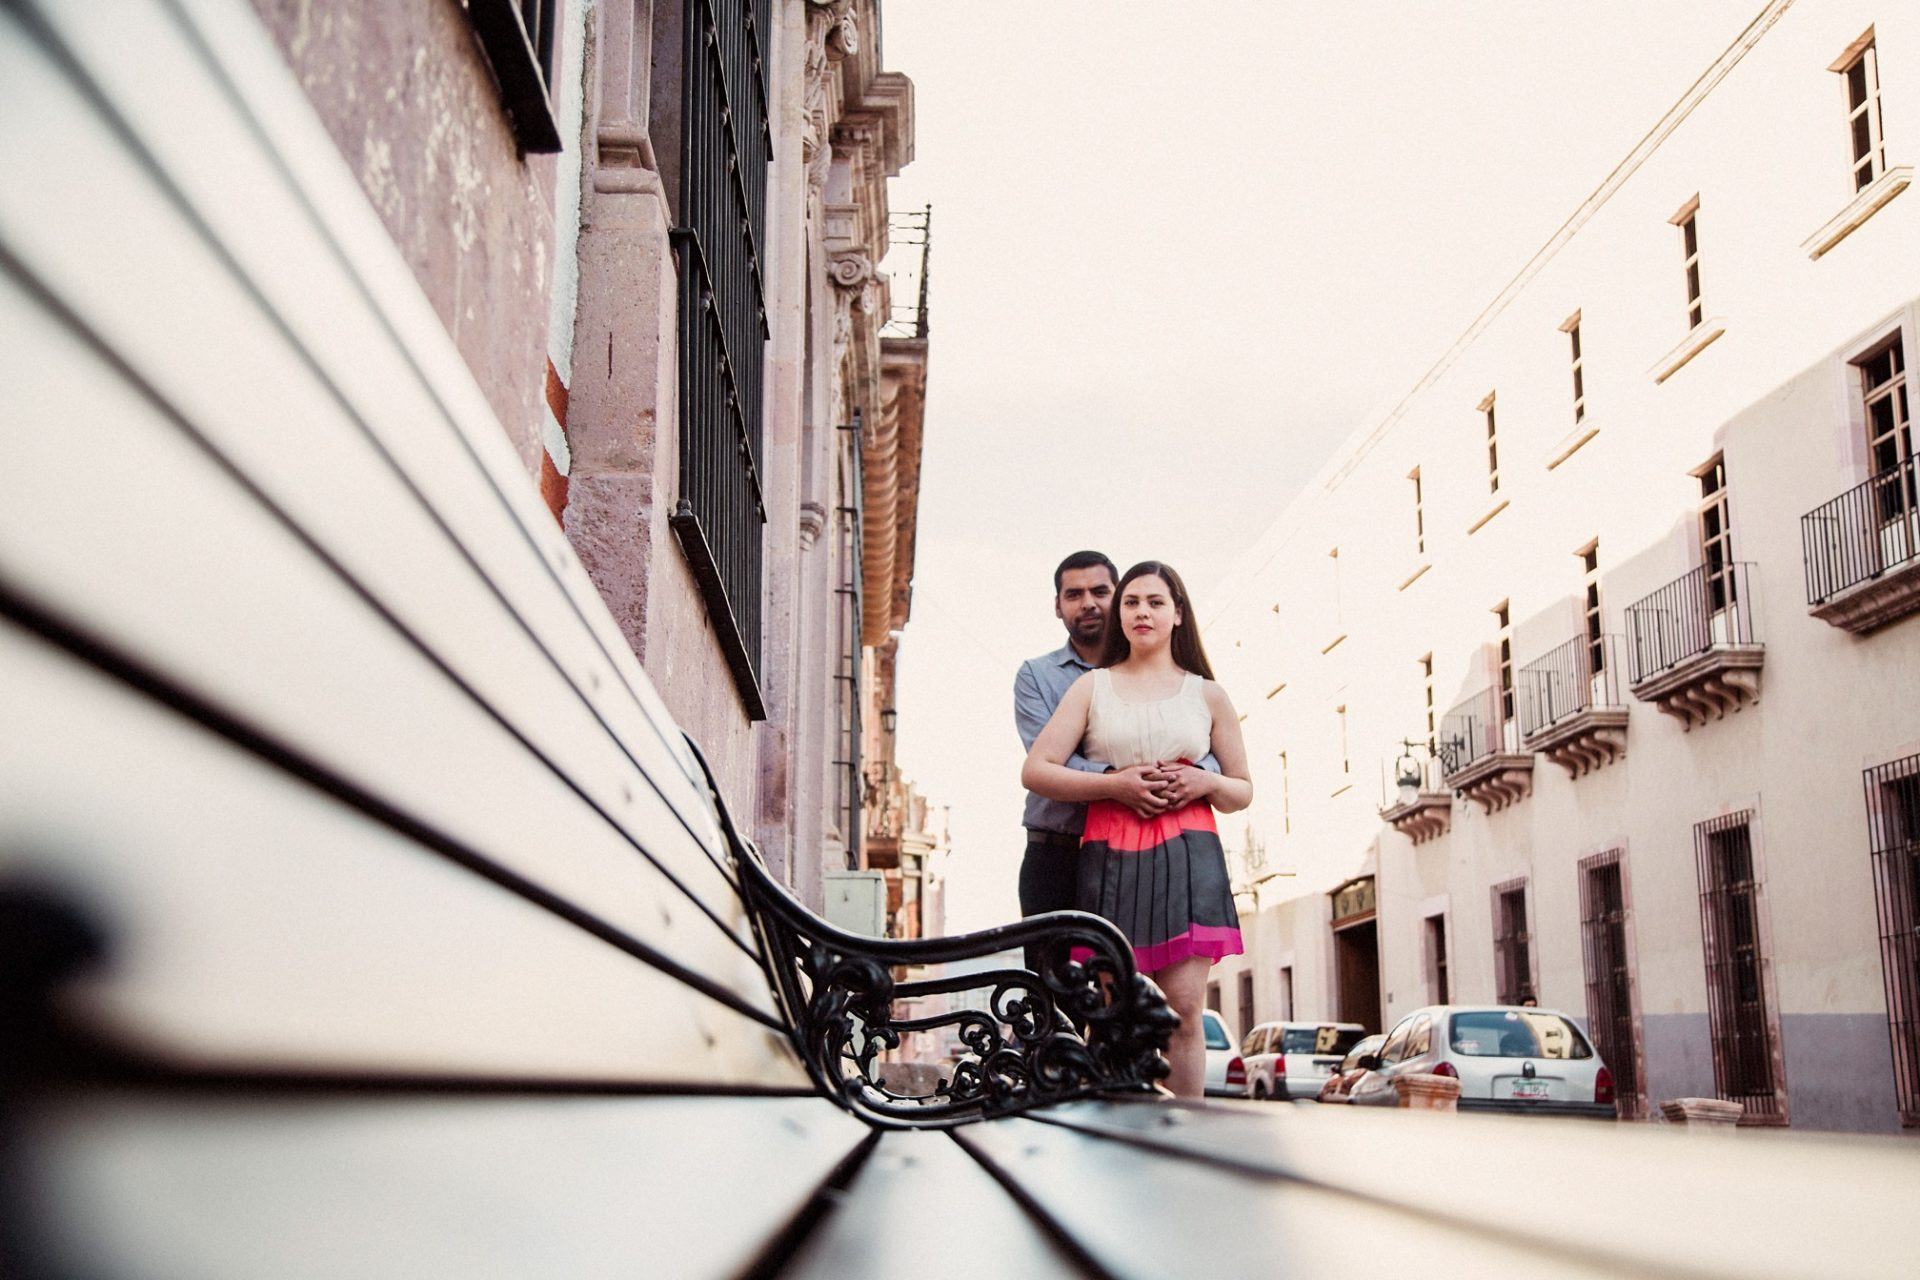 save_the_date_casual_zacatecas_fotografo_profesional_centro_historico-3